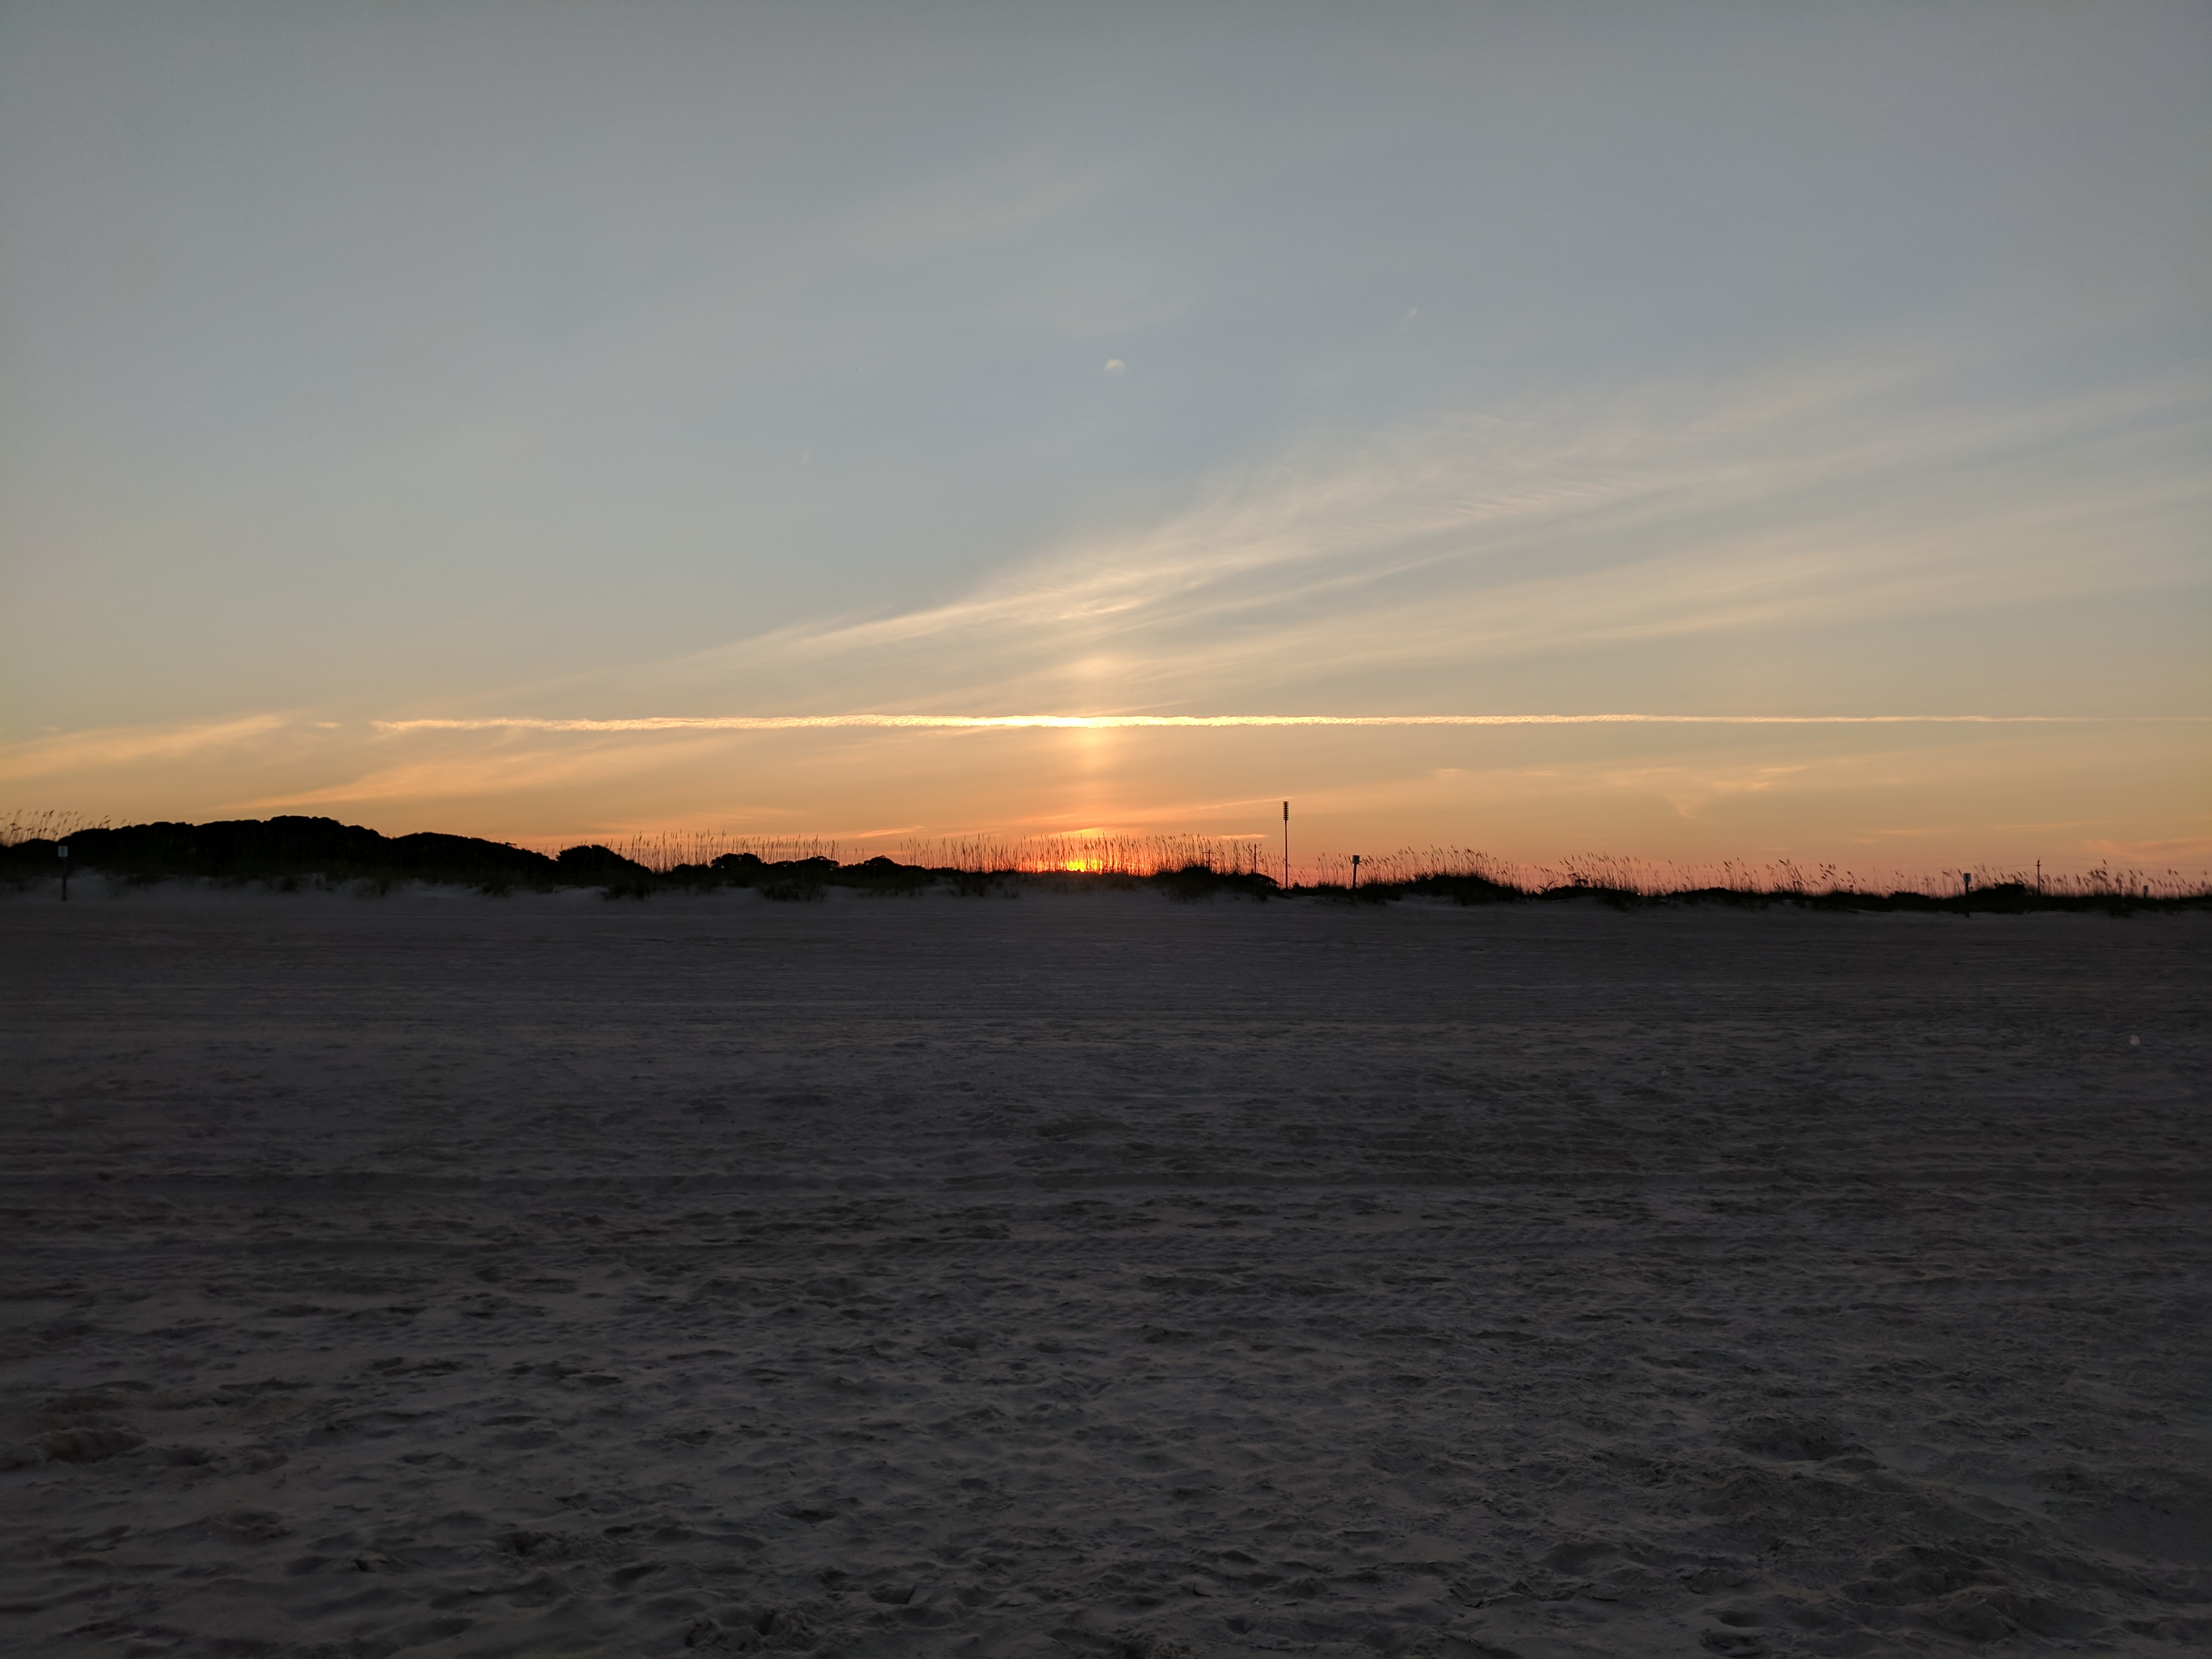 The Grand Seeley Adventure, family vacation, beach sunset